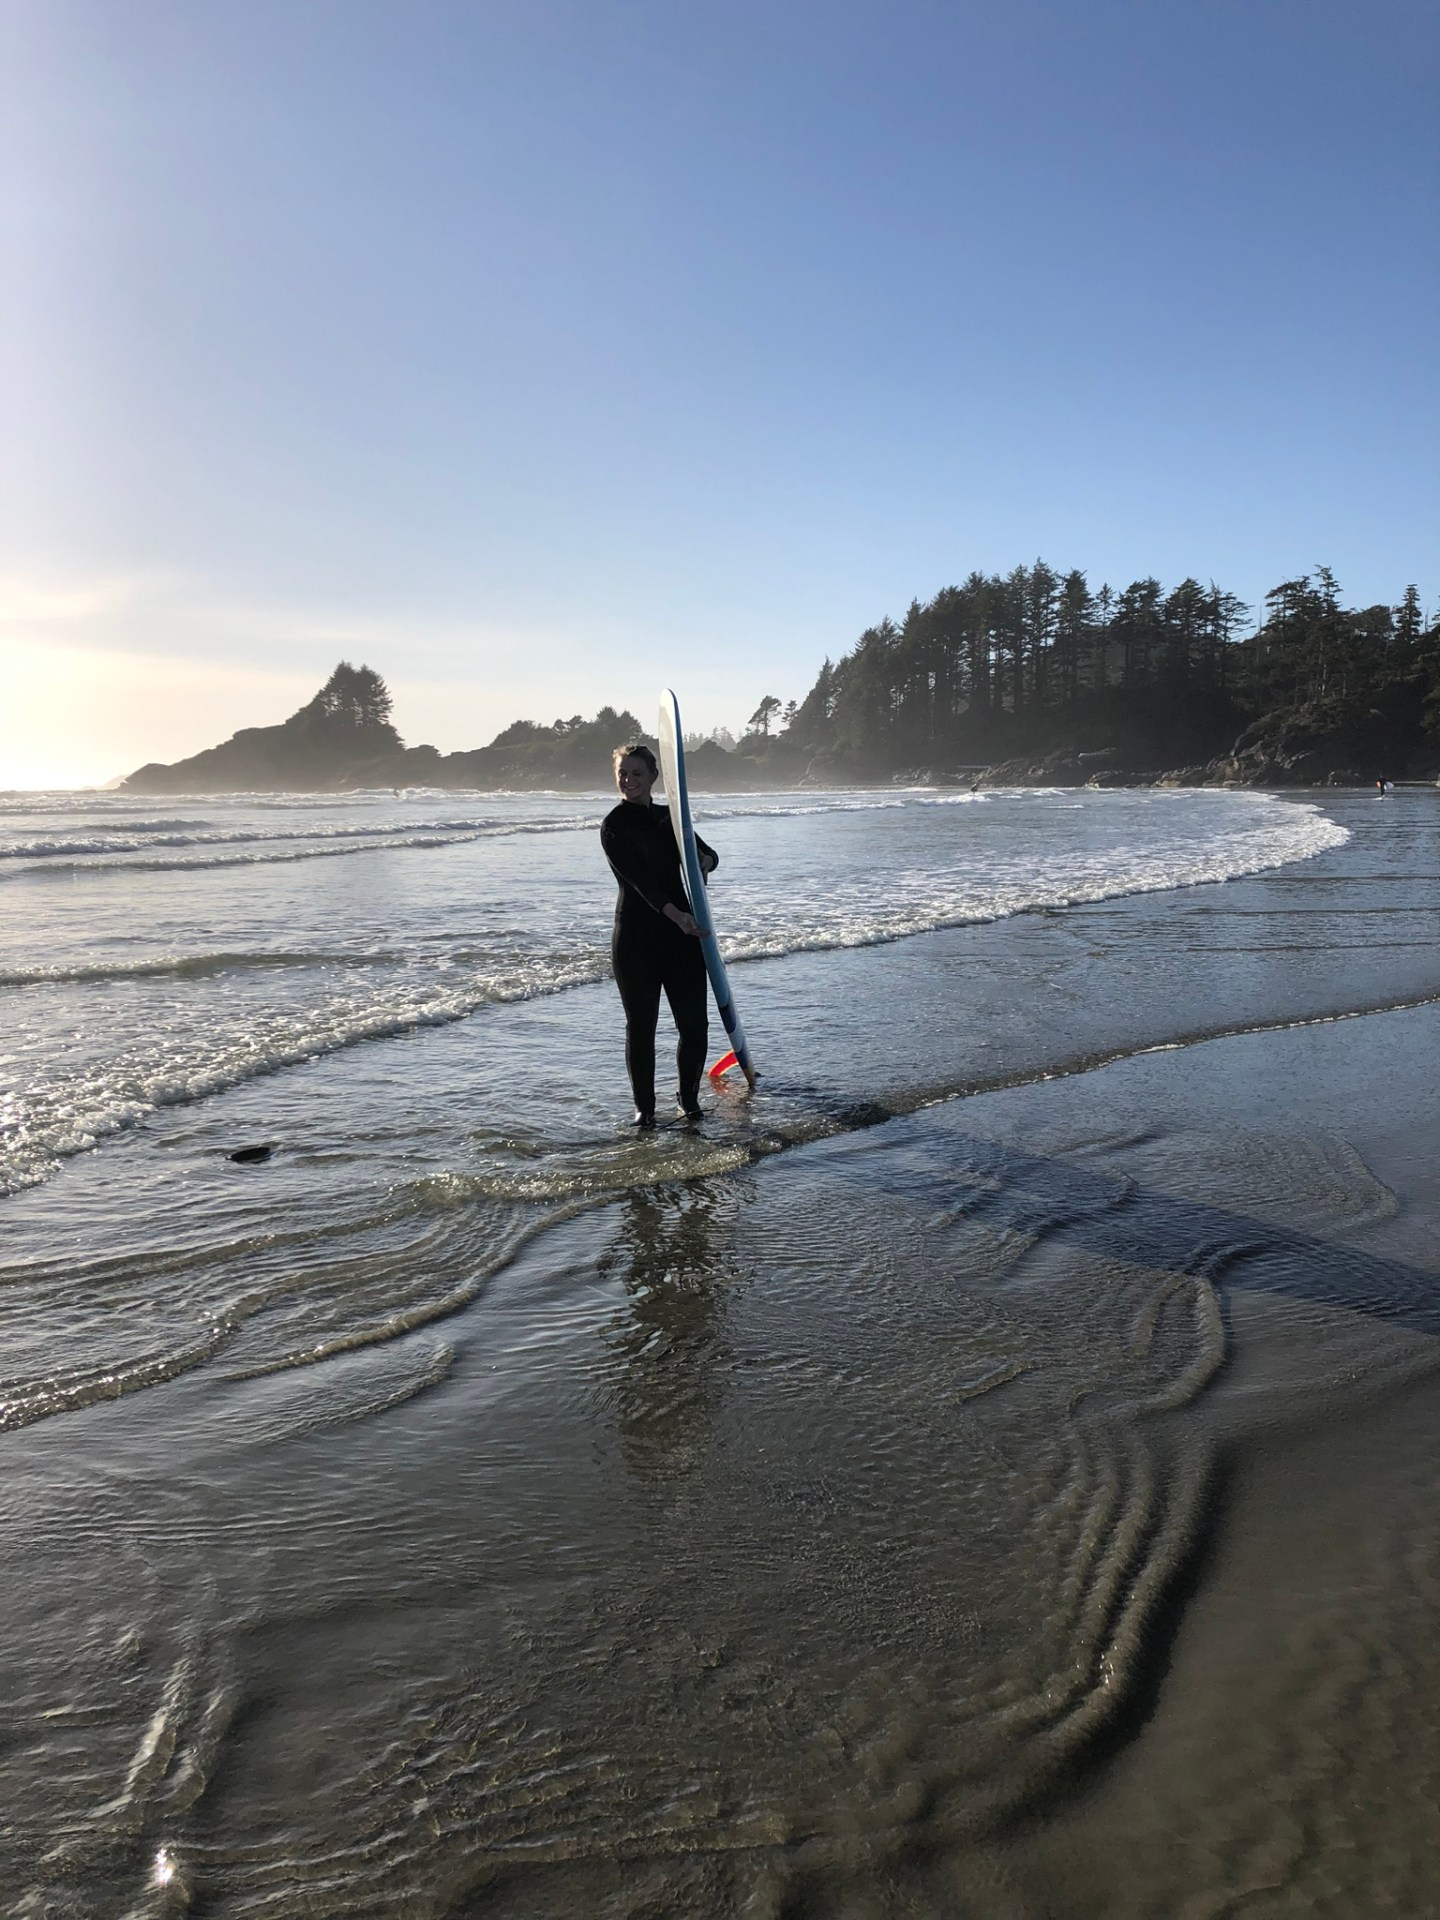 Surfing on Vancouver Island